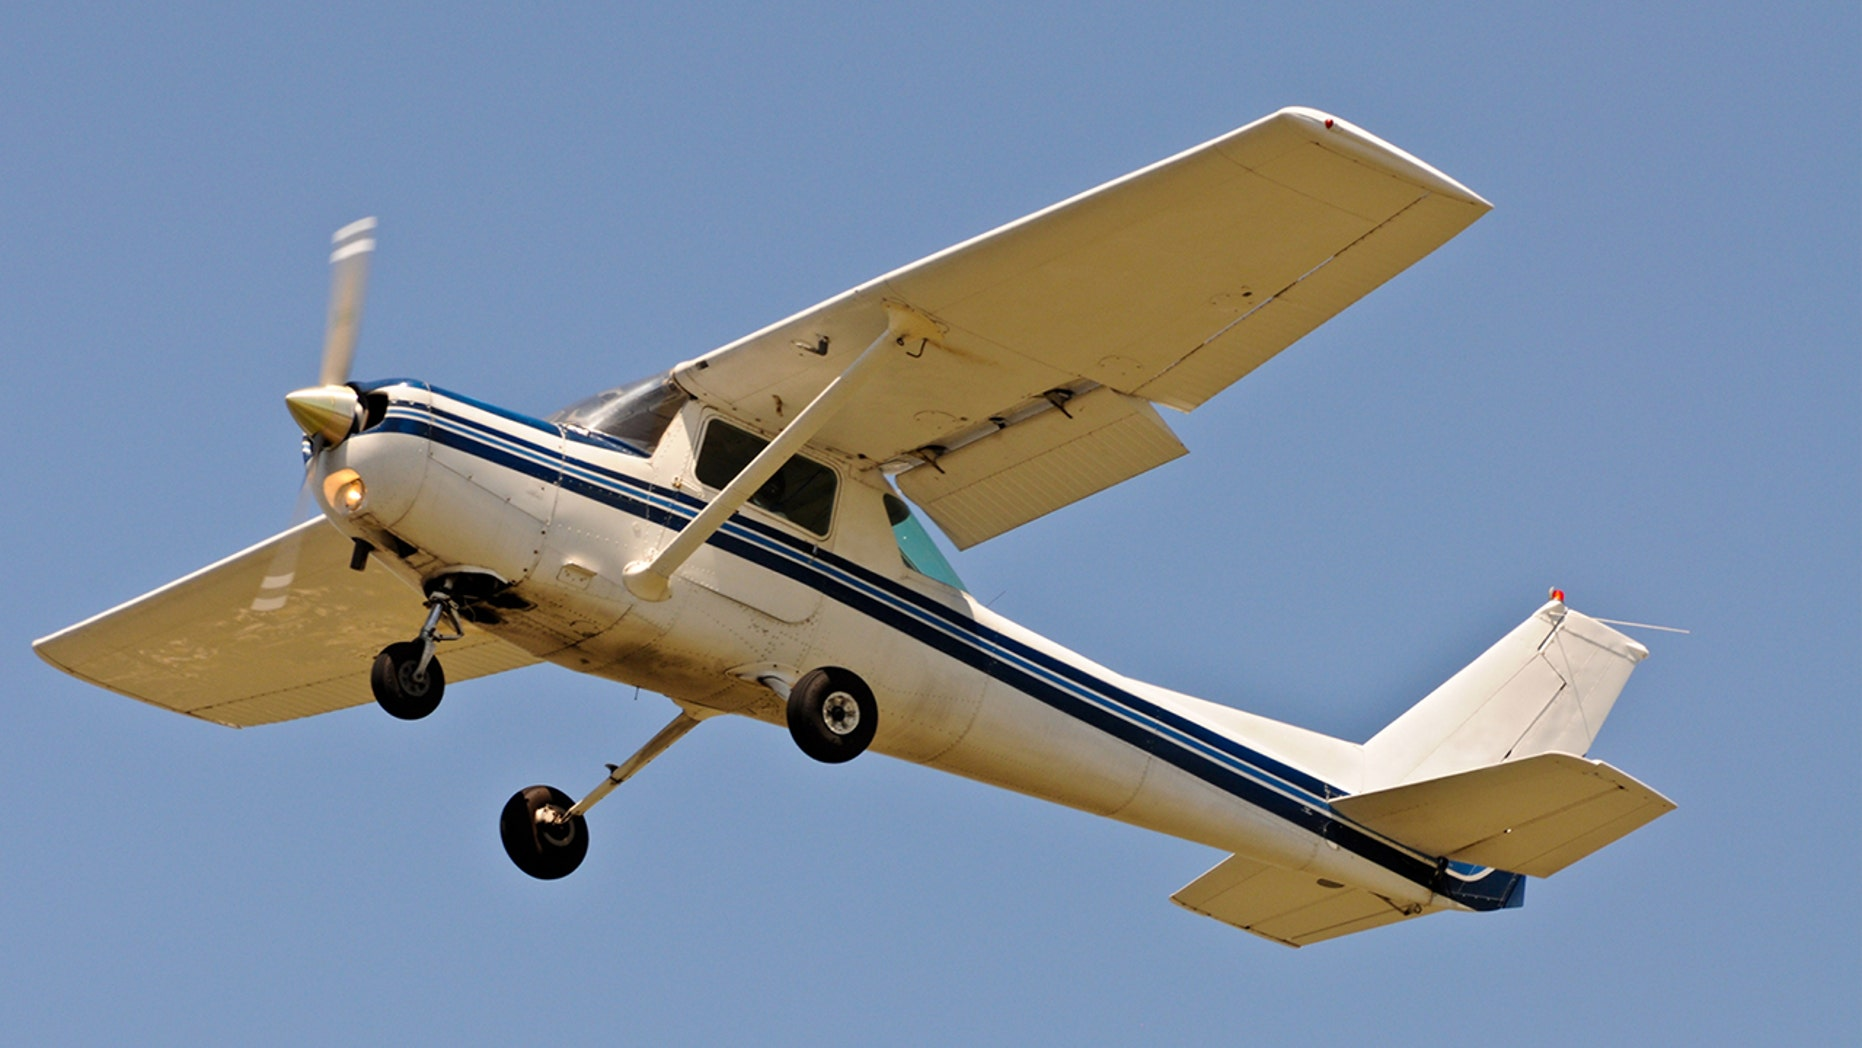 The student pilot's name has not been released.